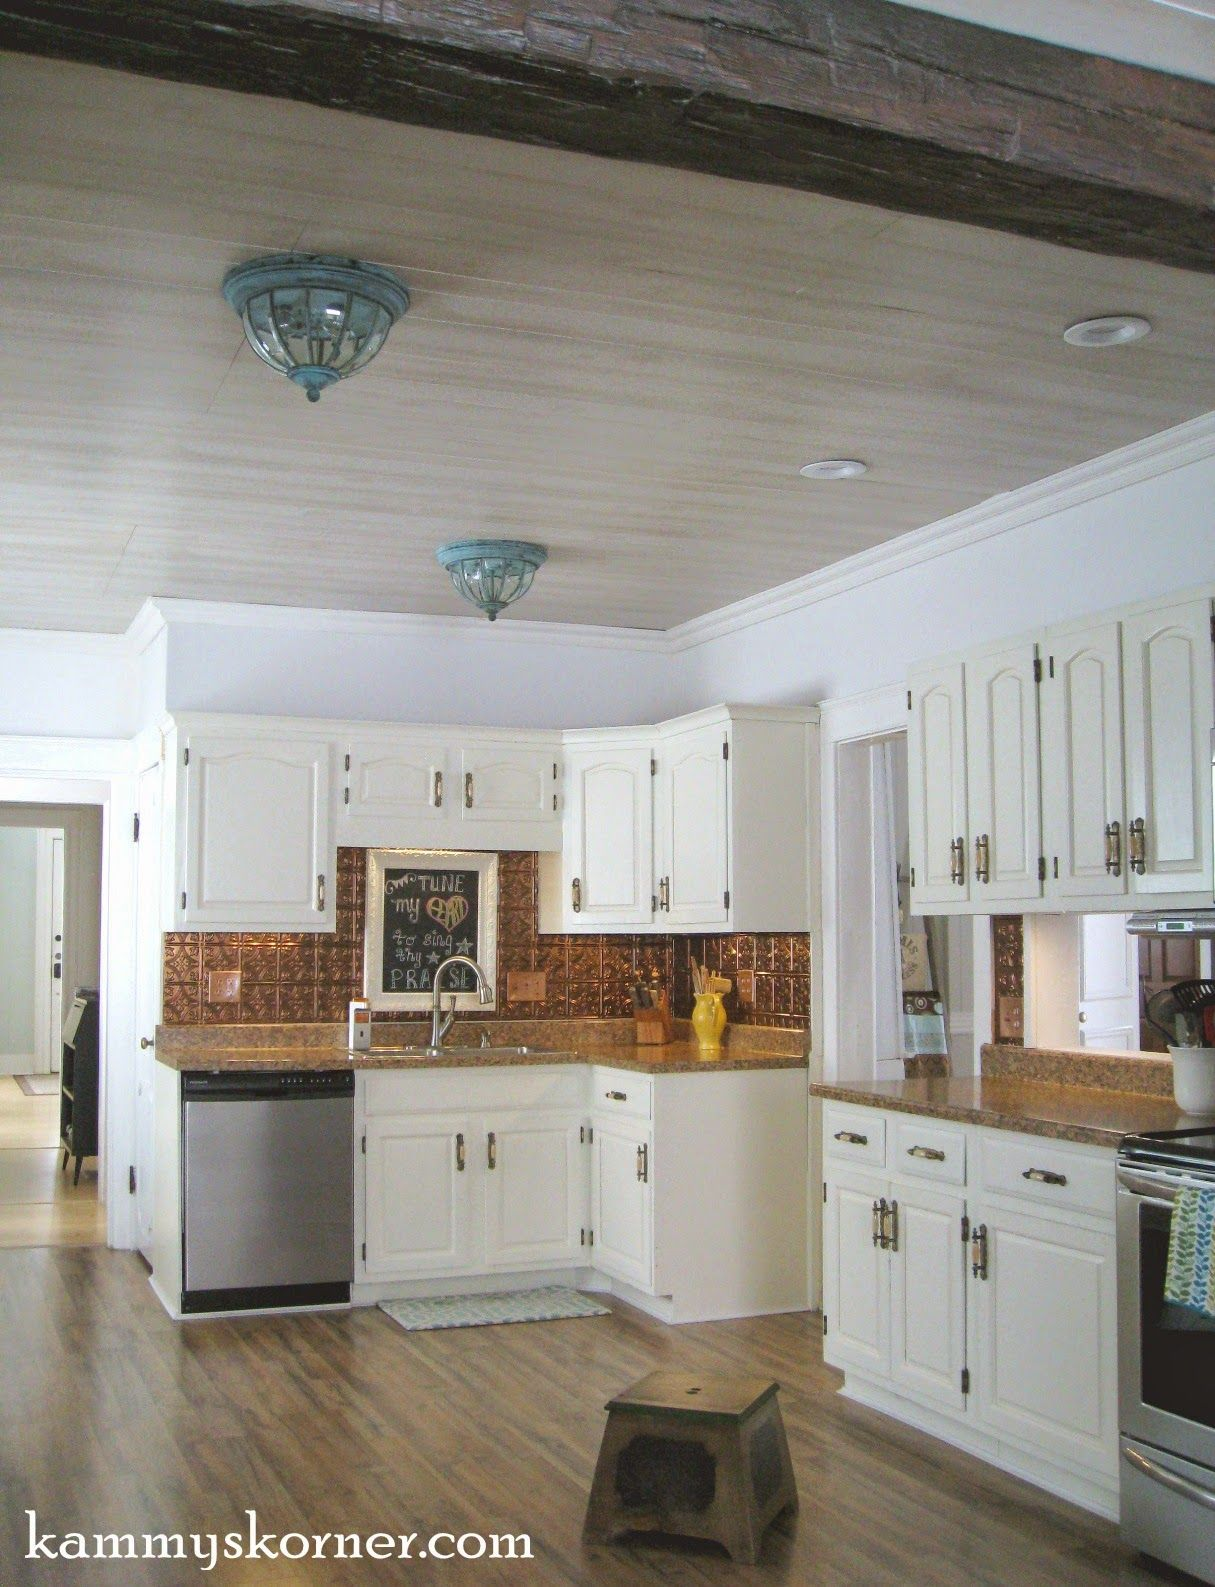 trim smsender ceilings coffered ceiling co kitchen tulum furlong crown